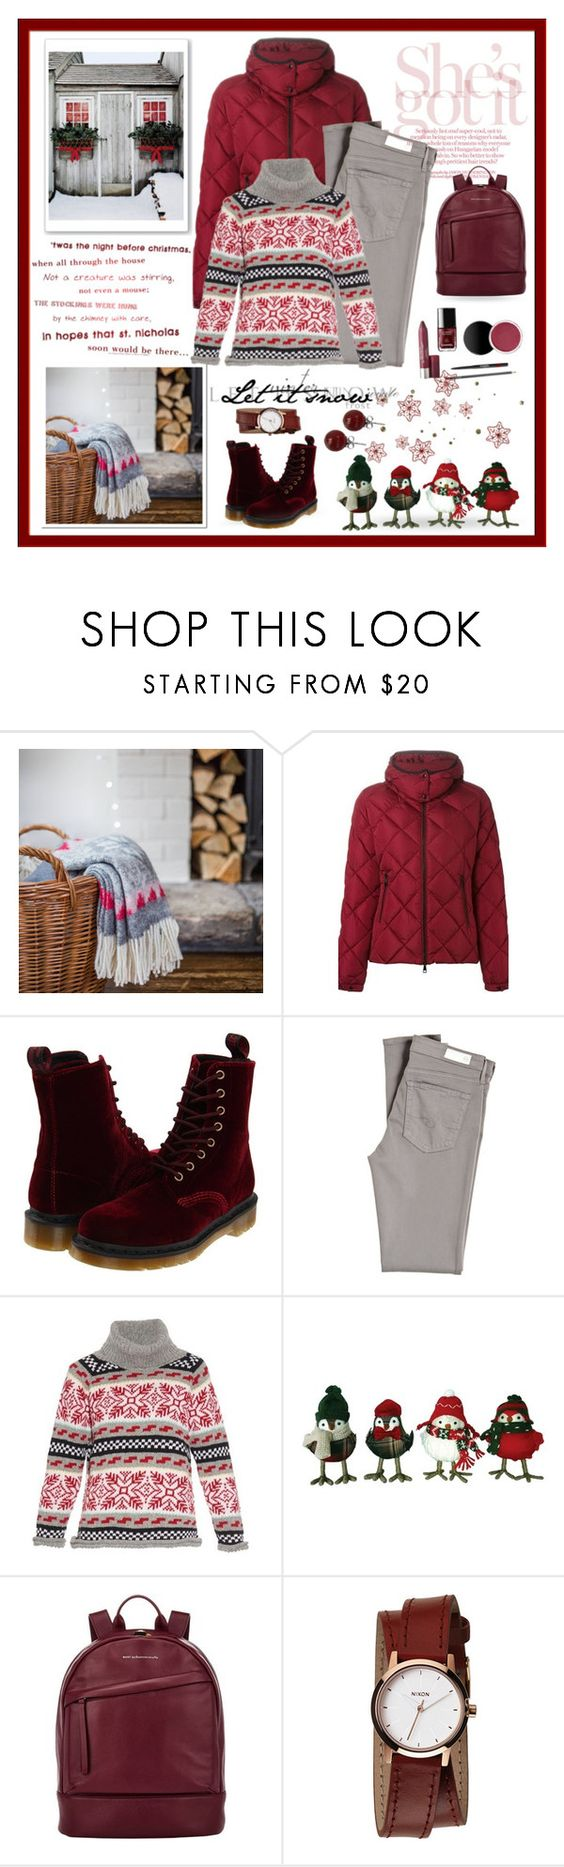 """Let it Snow"" by terry-tlc ❤ liked on Polyvore featuring Moncler, Dr. Martens, AG Adriano Goldschmied, Michaela Buerger, Want Les Essentiels de la Vie, Nixon and Lalique"